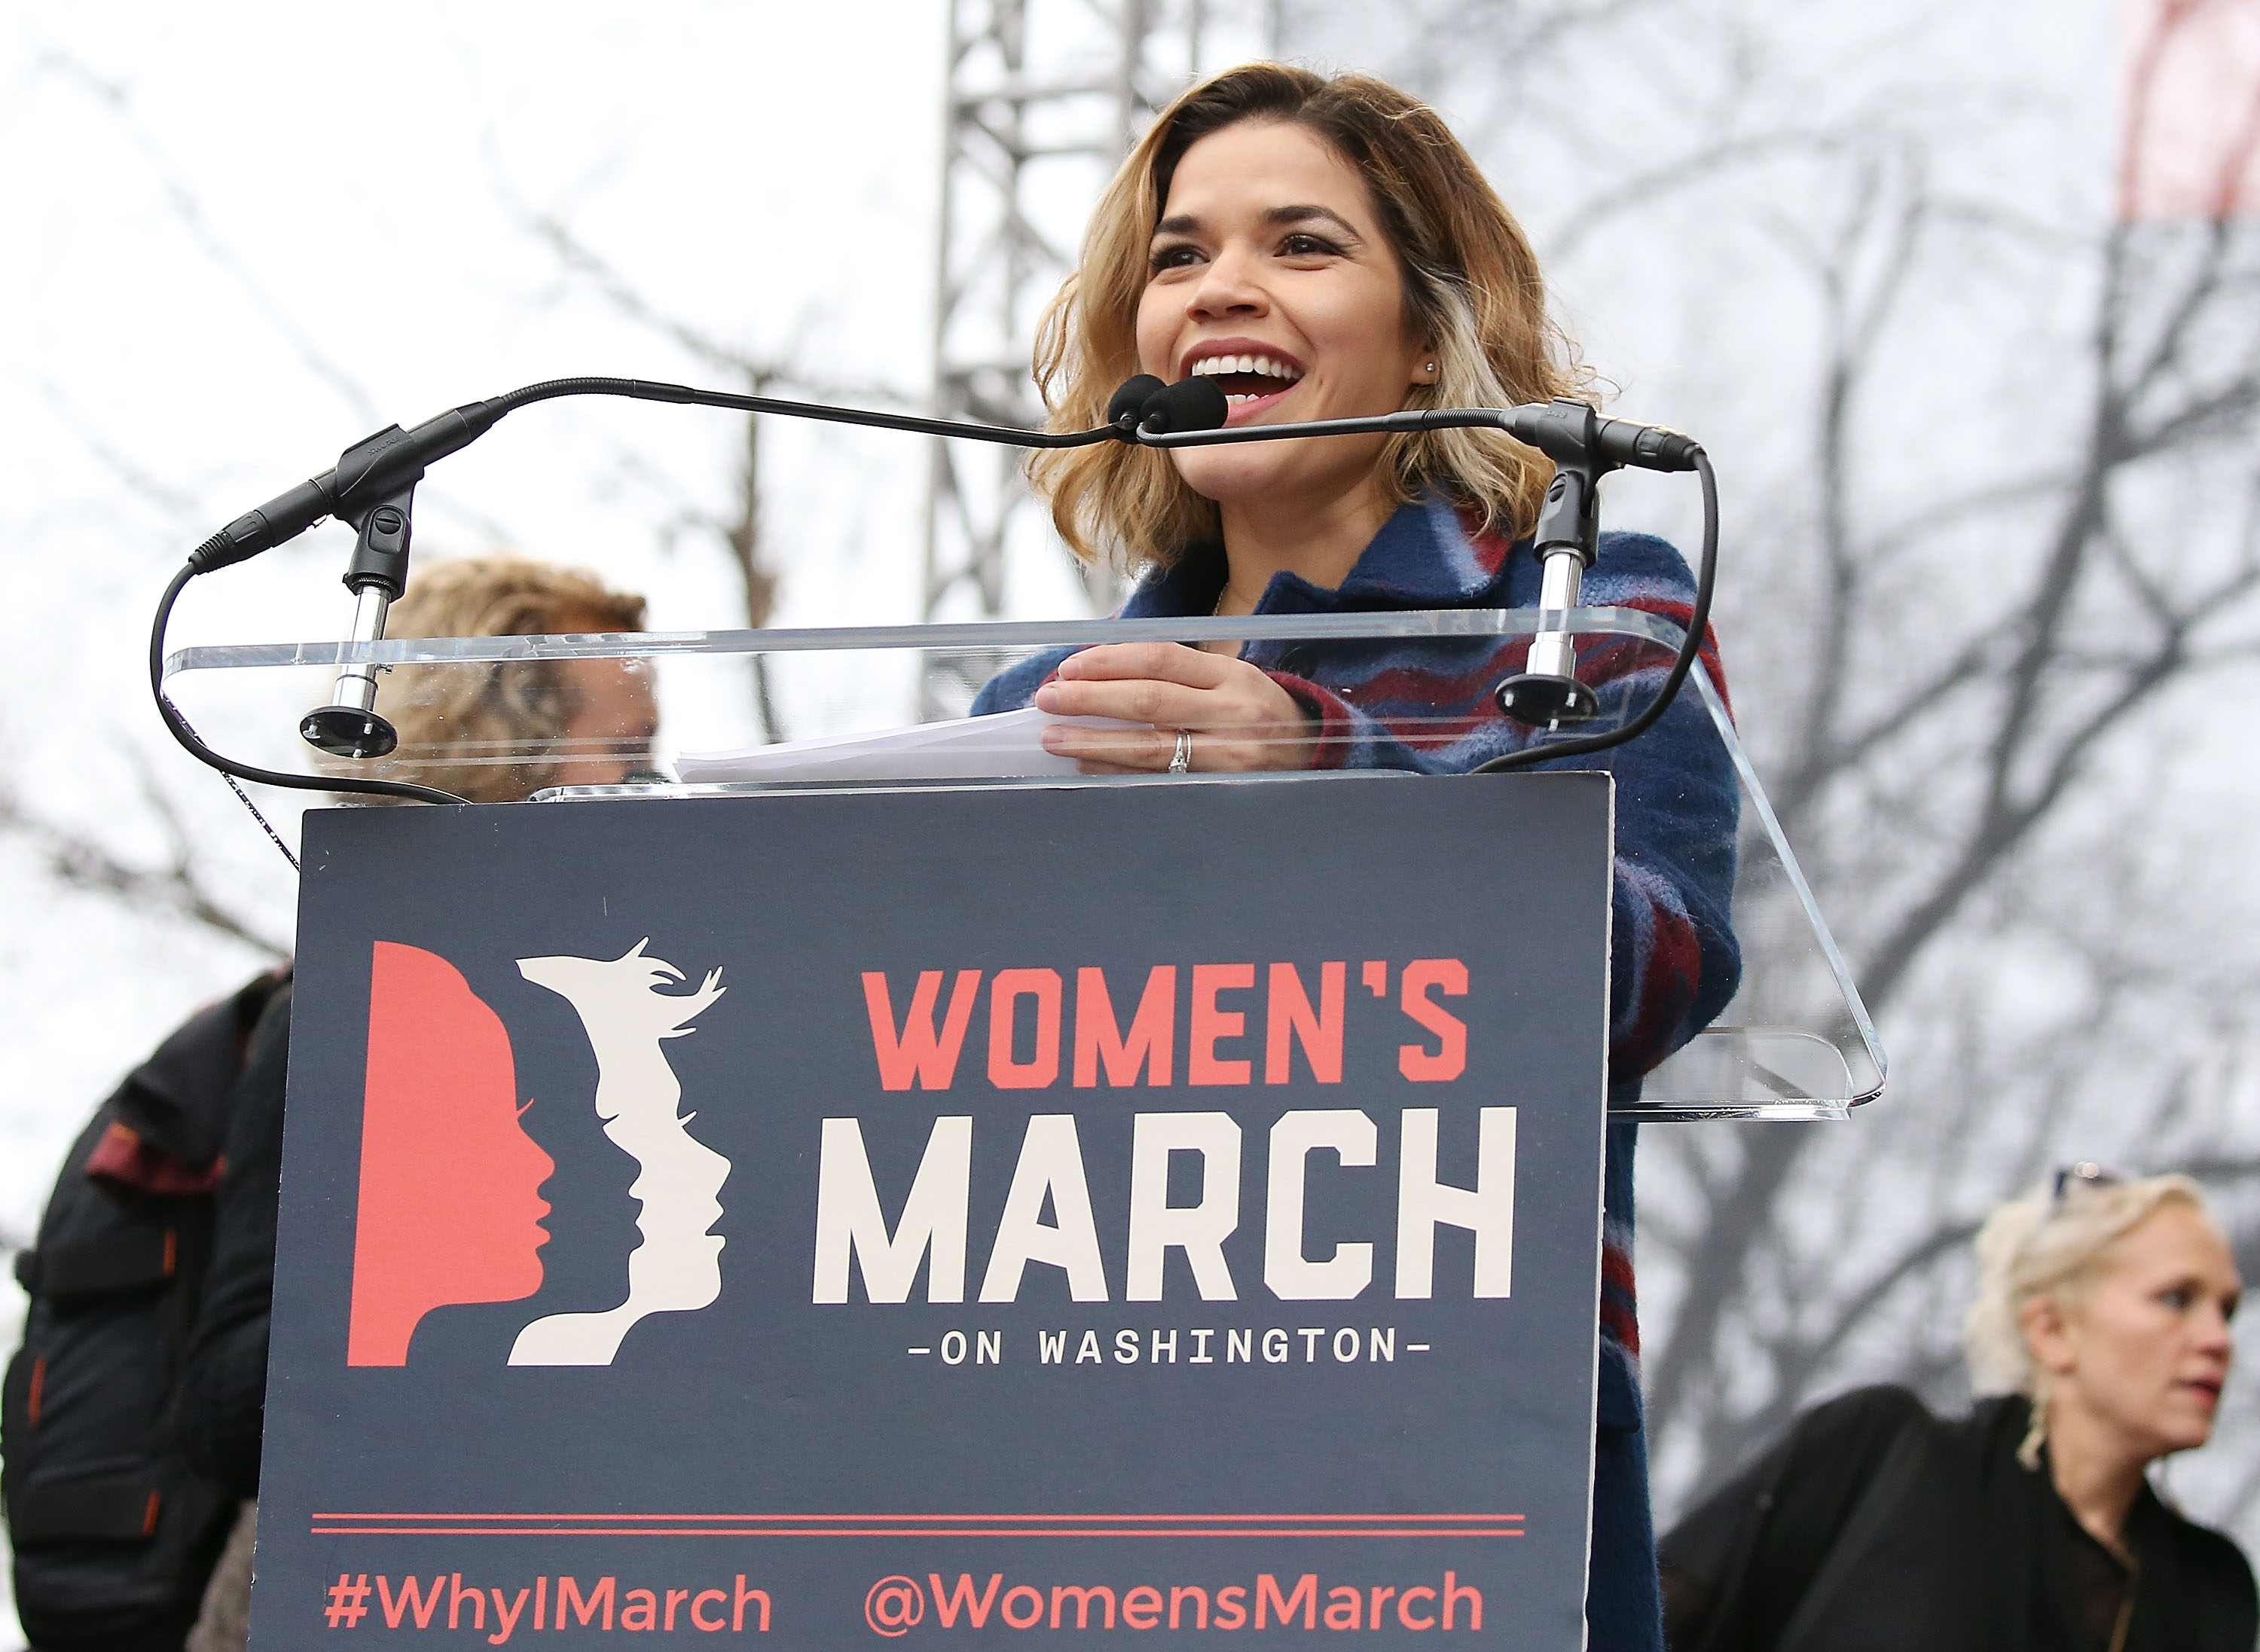 America Ferrara speaks onstage at the Women's March on Washington on January 21, 2017 in Washington, DC.